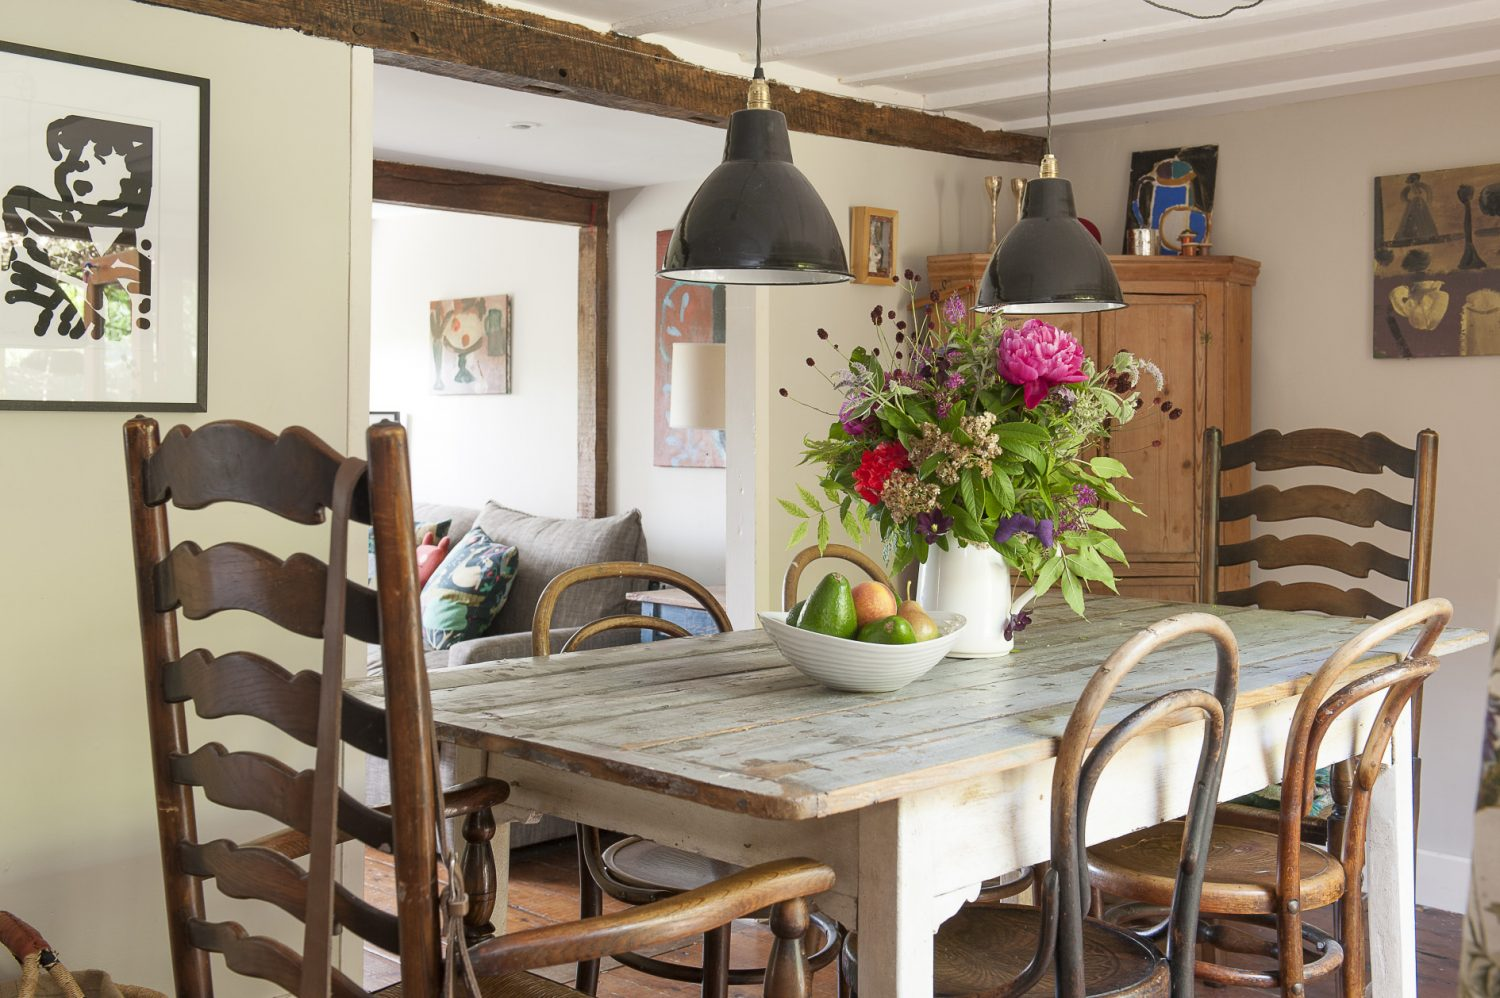 The house's low ceilings add to its 'boat' feel. Mismatched chairs grouped around the dining table and arrangements of cottage garden flowers add country charm